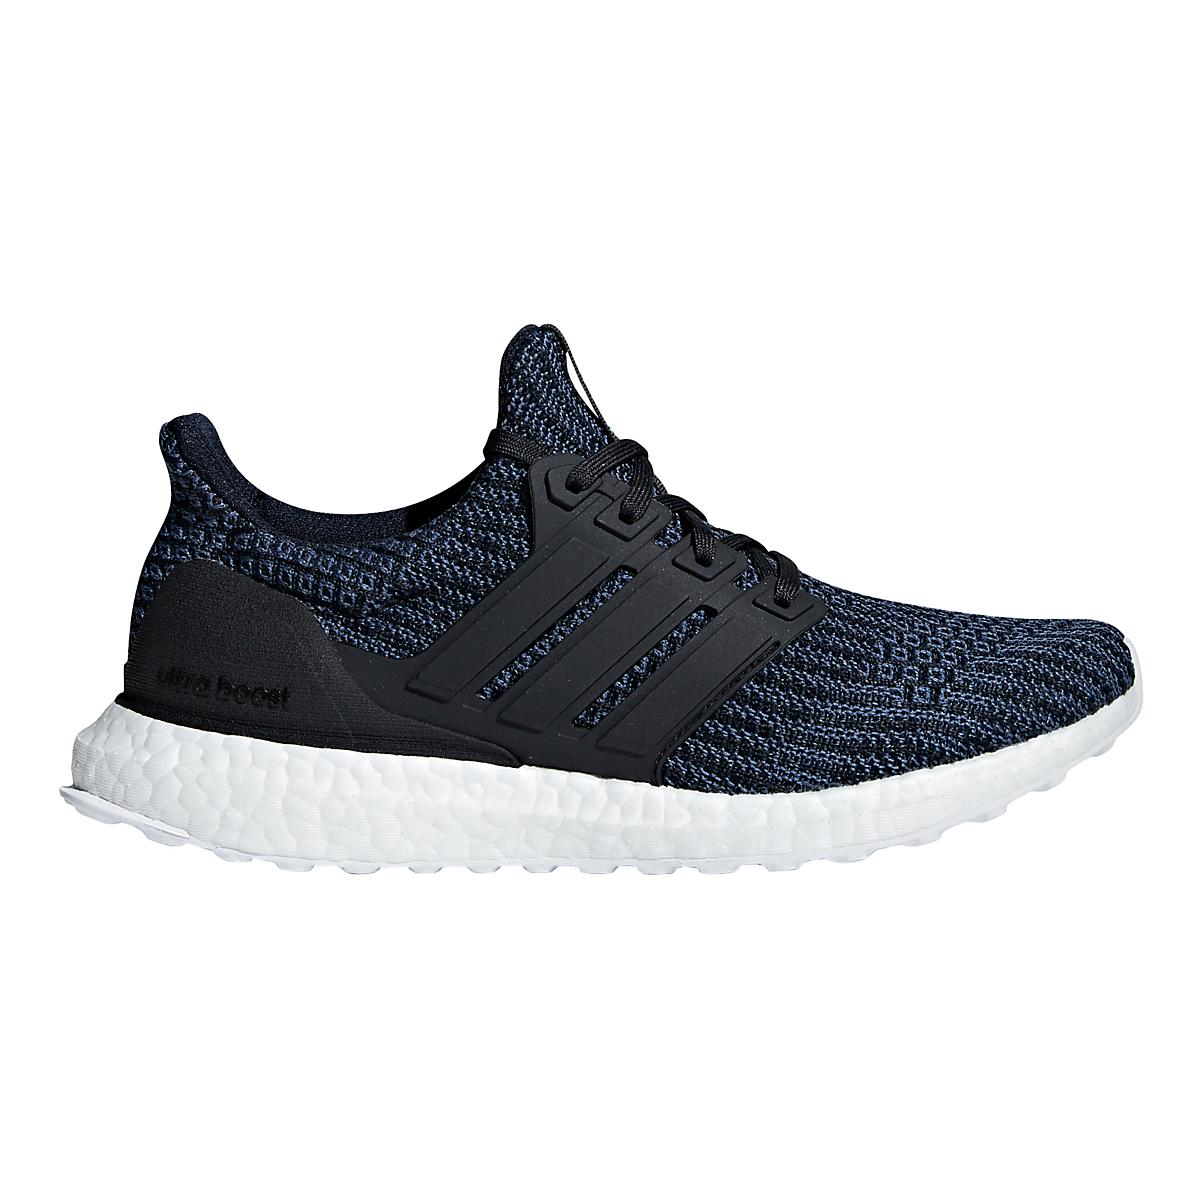 Women'sUltra Boost Parley